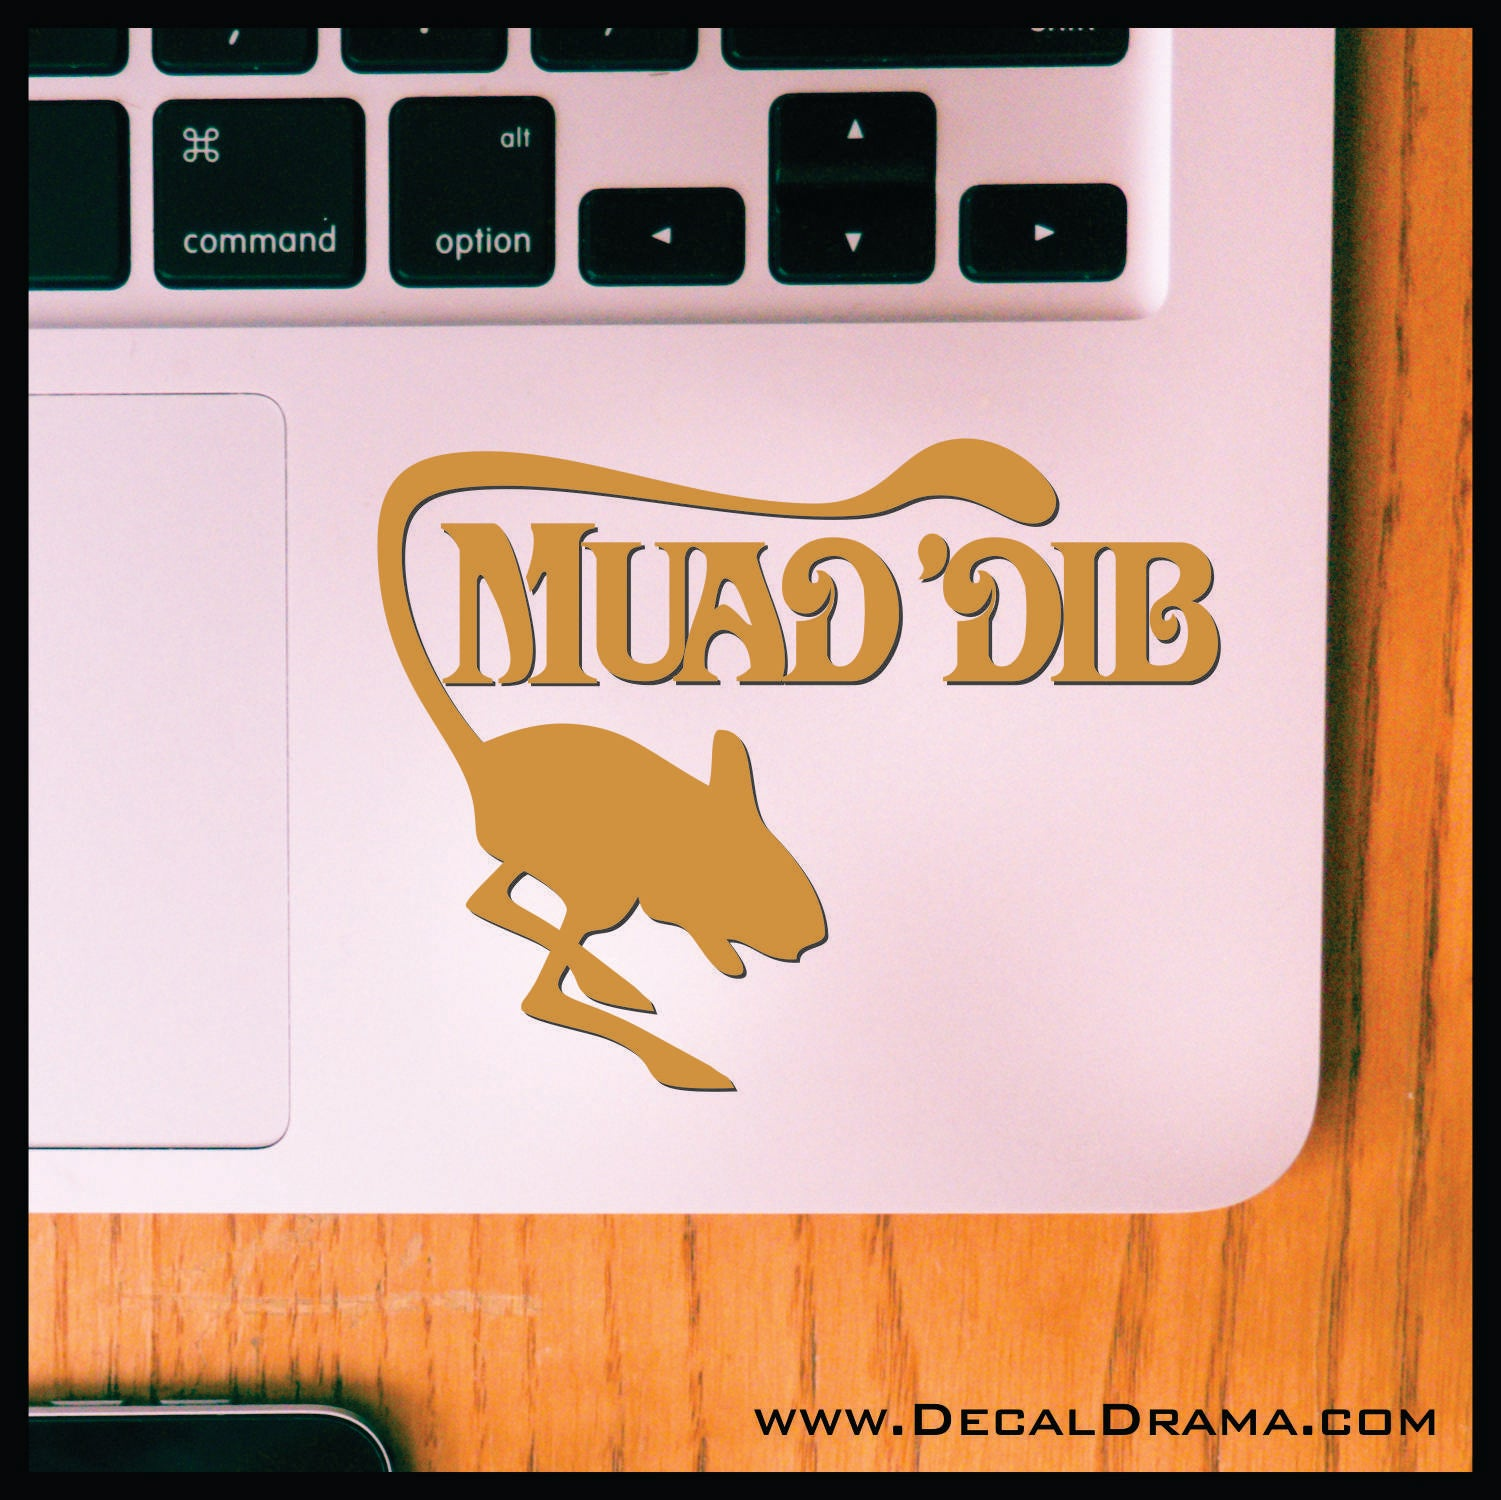 Muad'Dib mouse Frank Herbert's Dune Fan Art Vinyl Decal